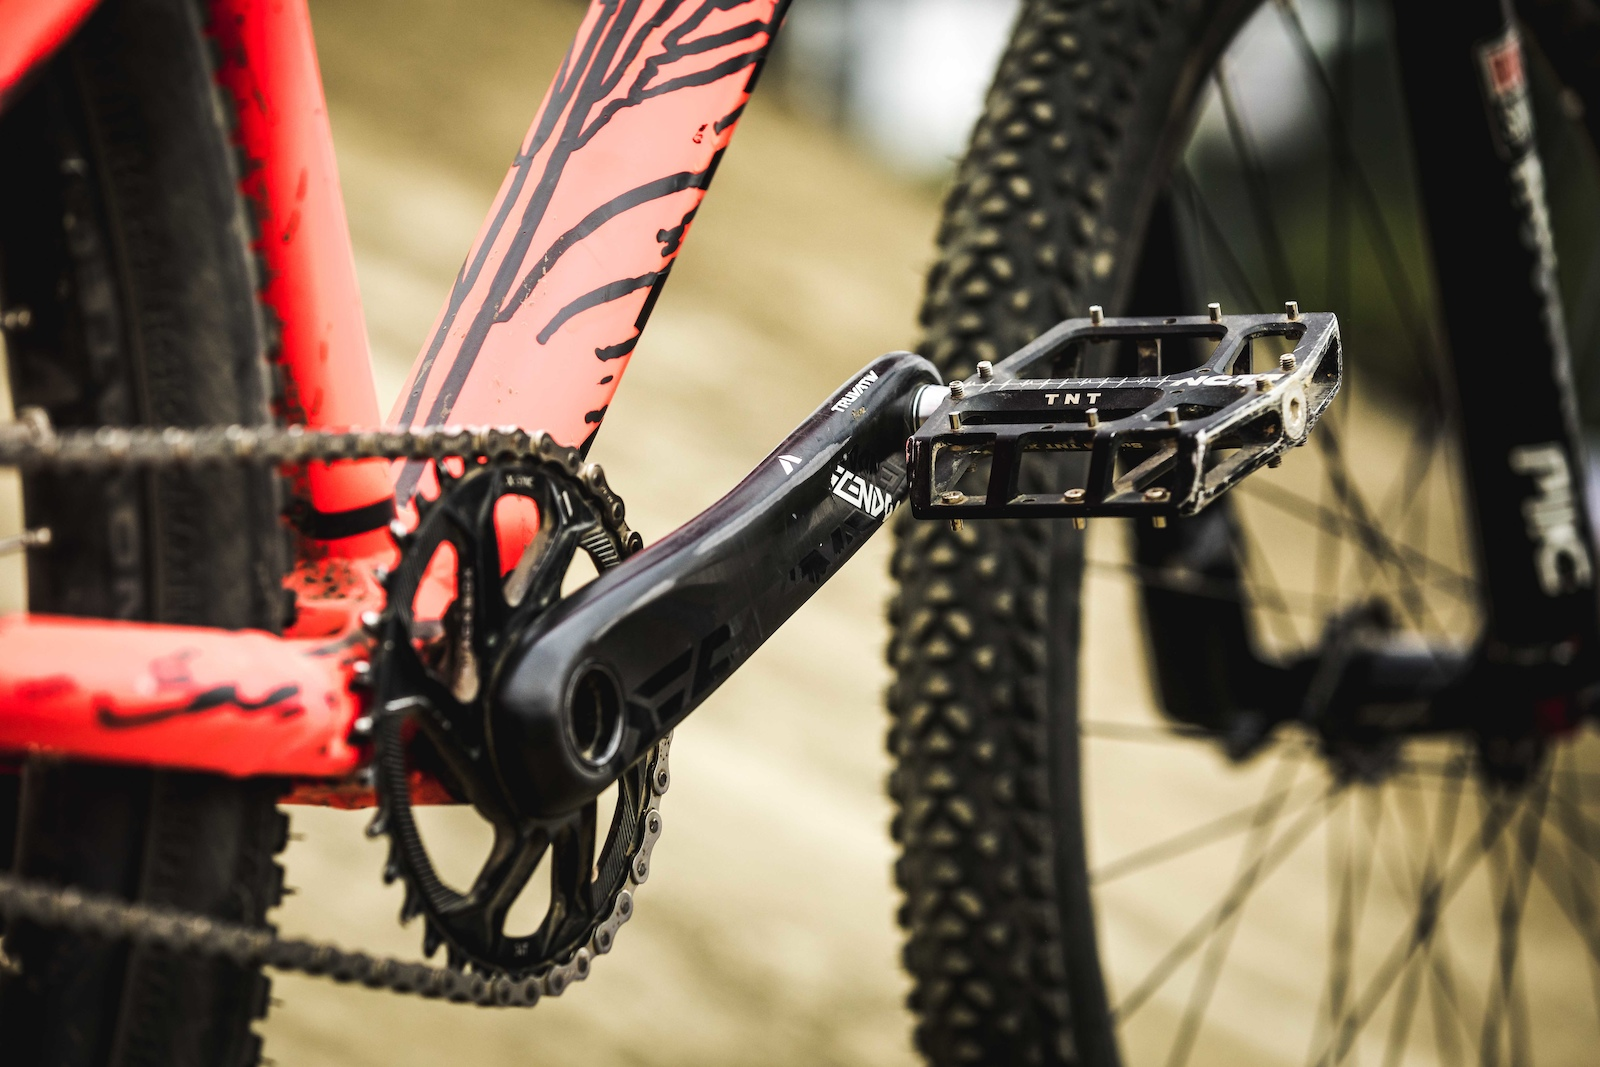 The Truvativ Descentant crankset aids the pedal power while NC-17 pedals keep his feet glued where they need to be.